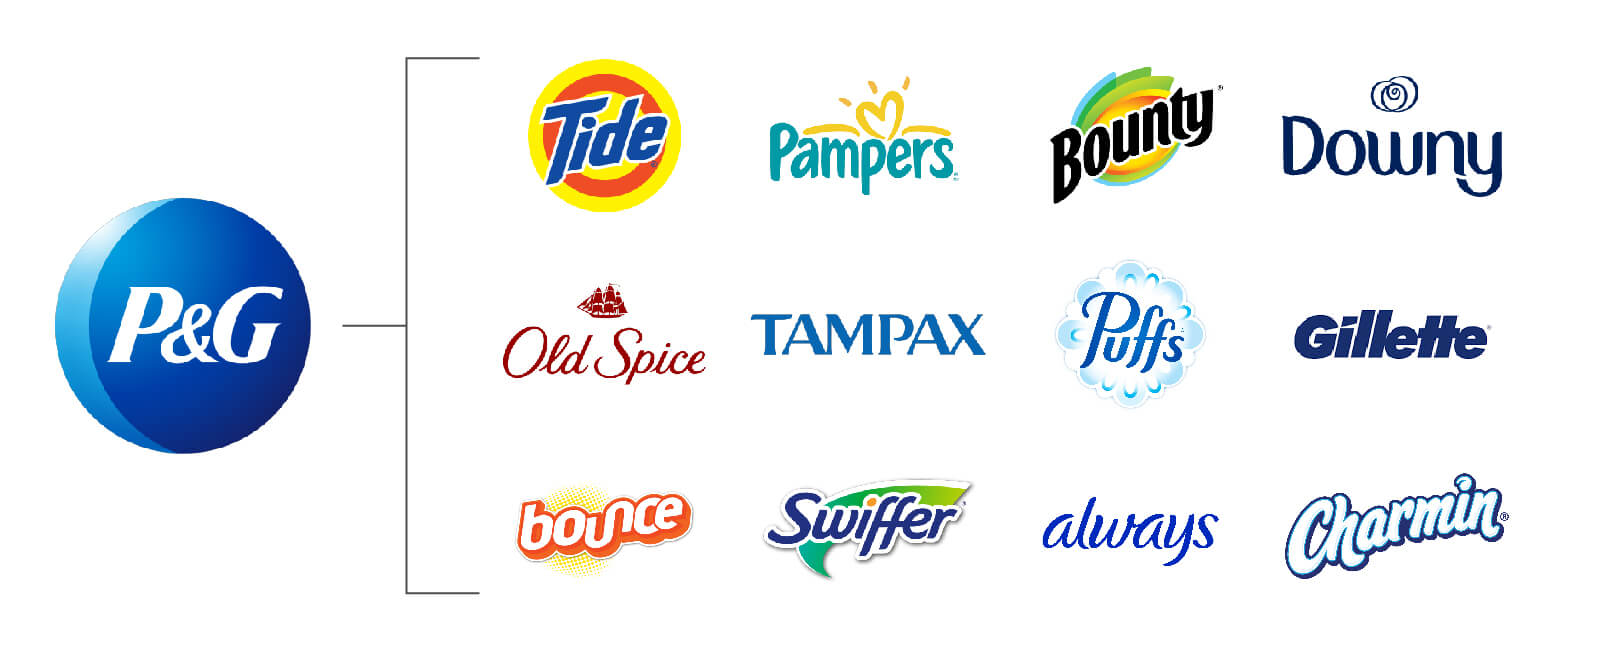 Example of brand architecture from P&G